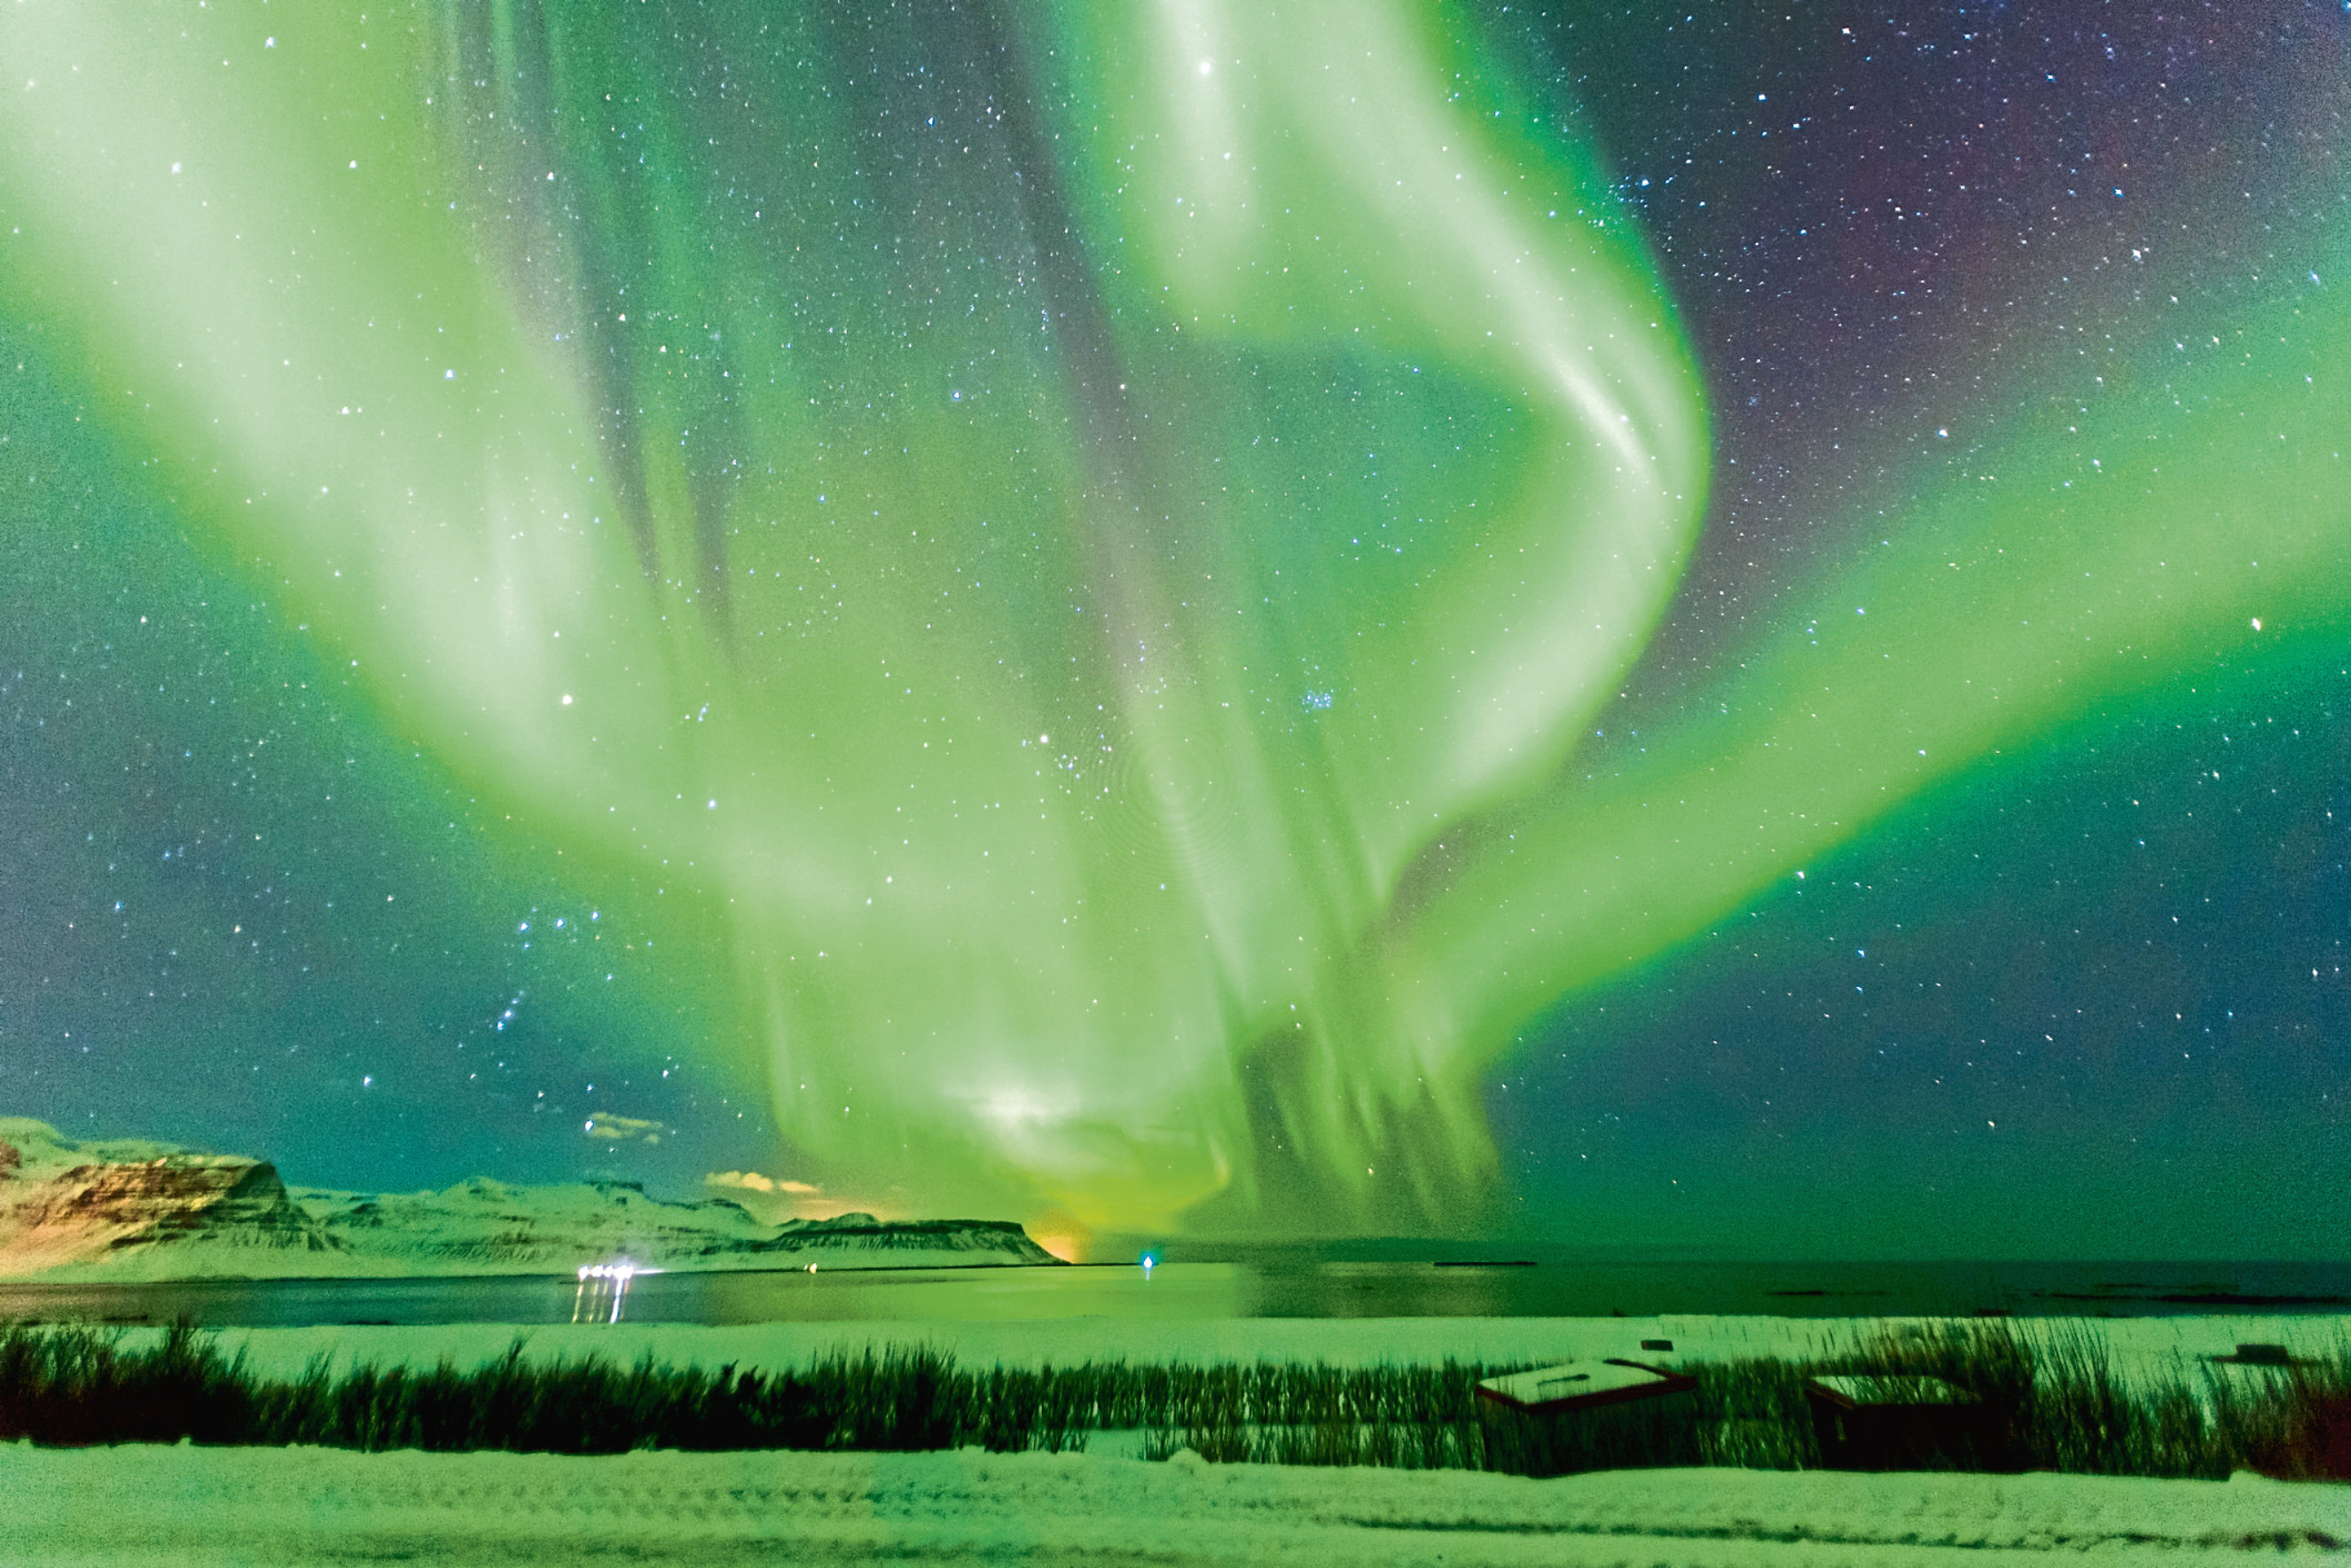 The Aurora Borealis, also known as the Northern Lights, seen above Iceland